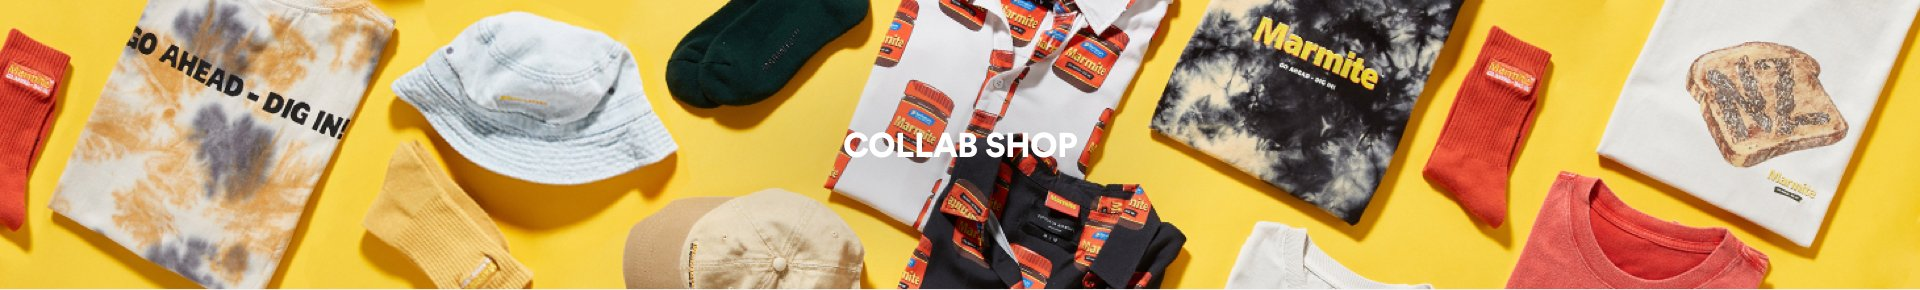 Collab Shop